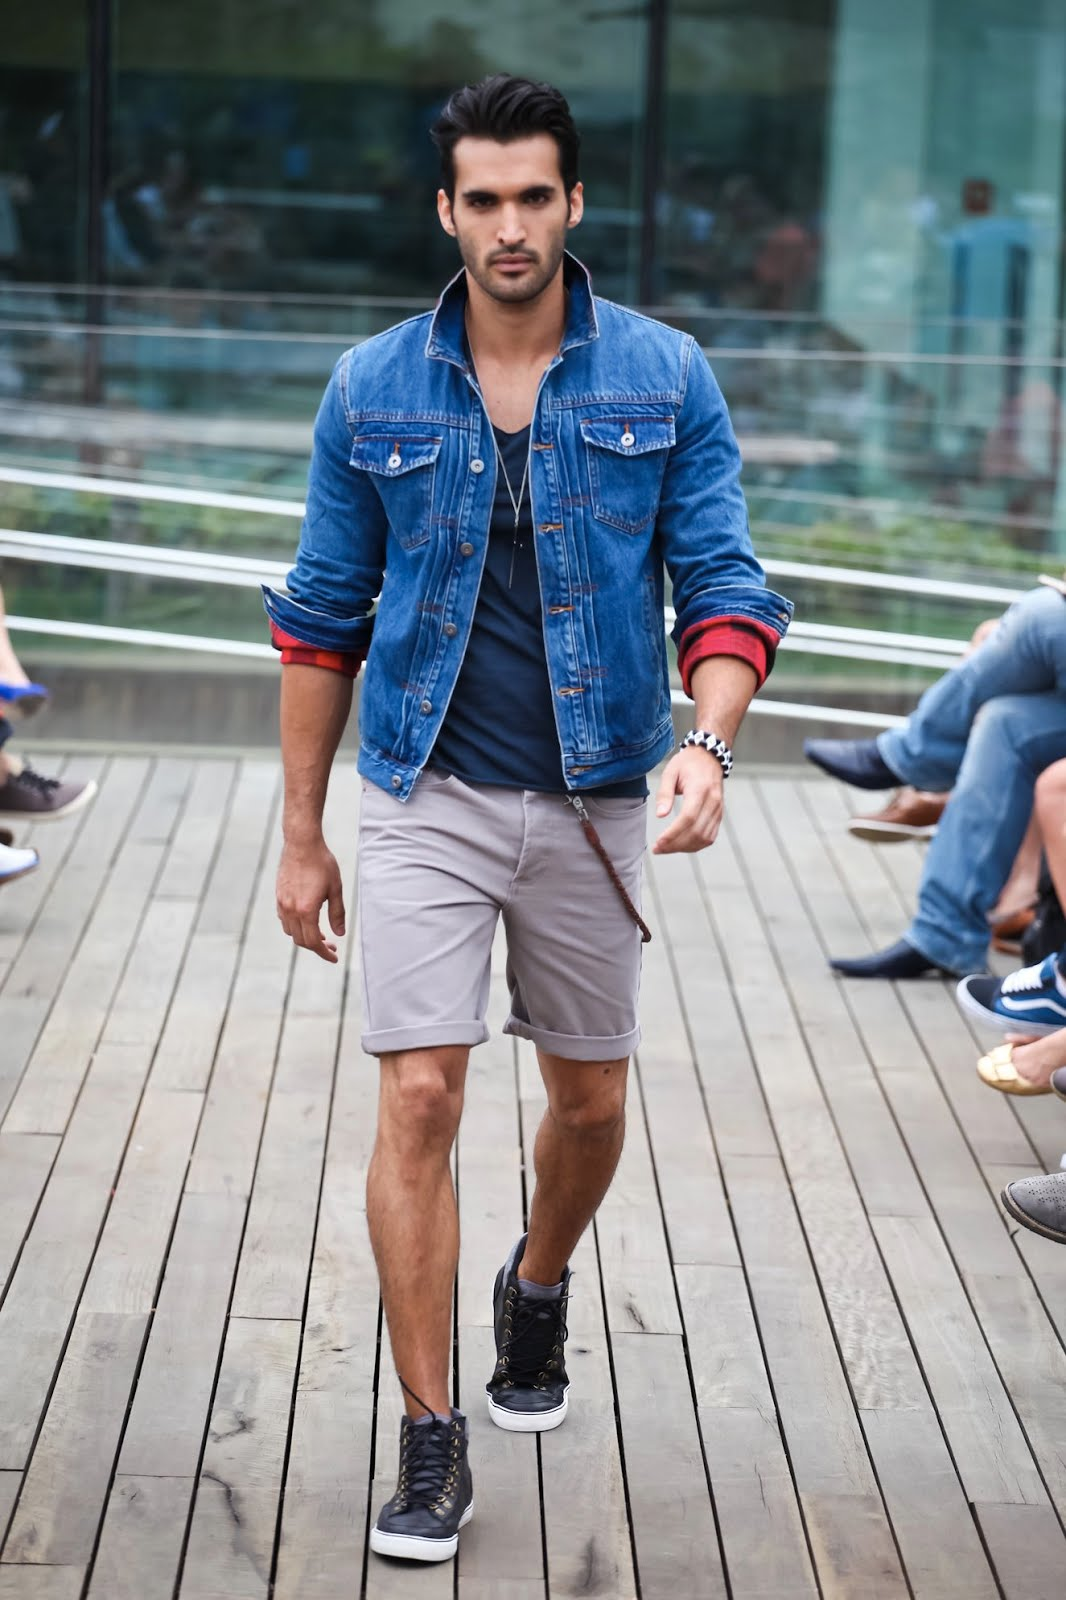 Sunday morning discussion washed or raw denim jacket?  malefashionadvice